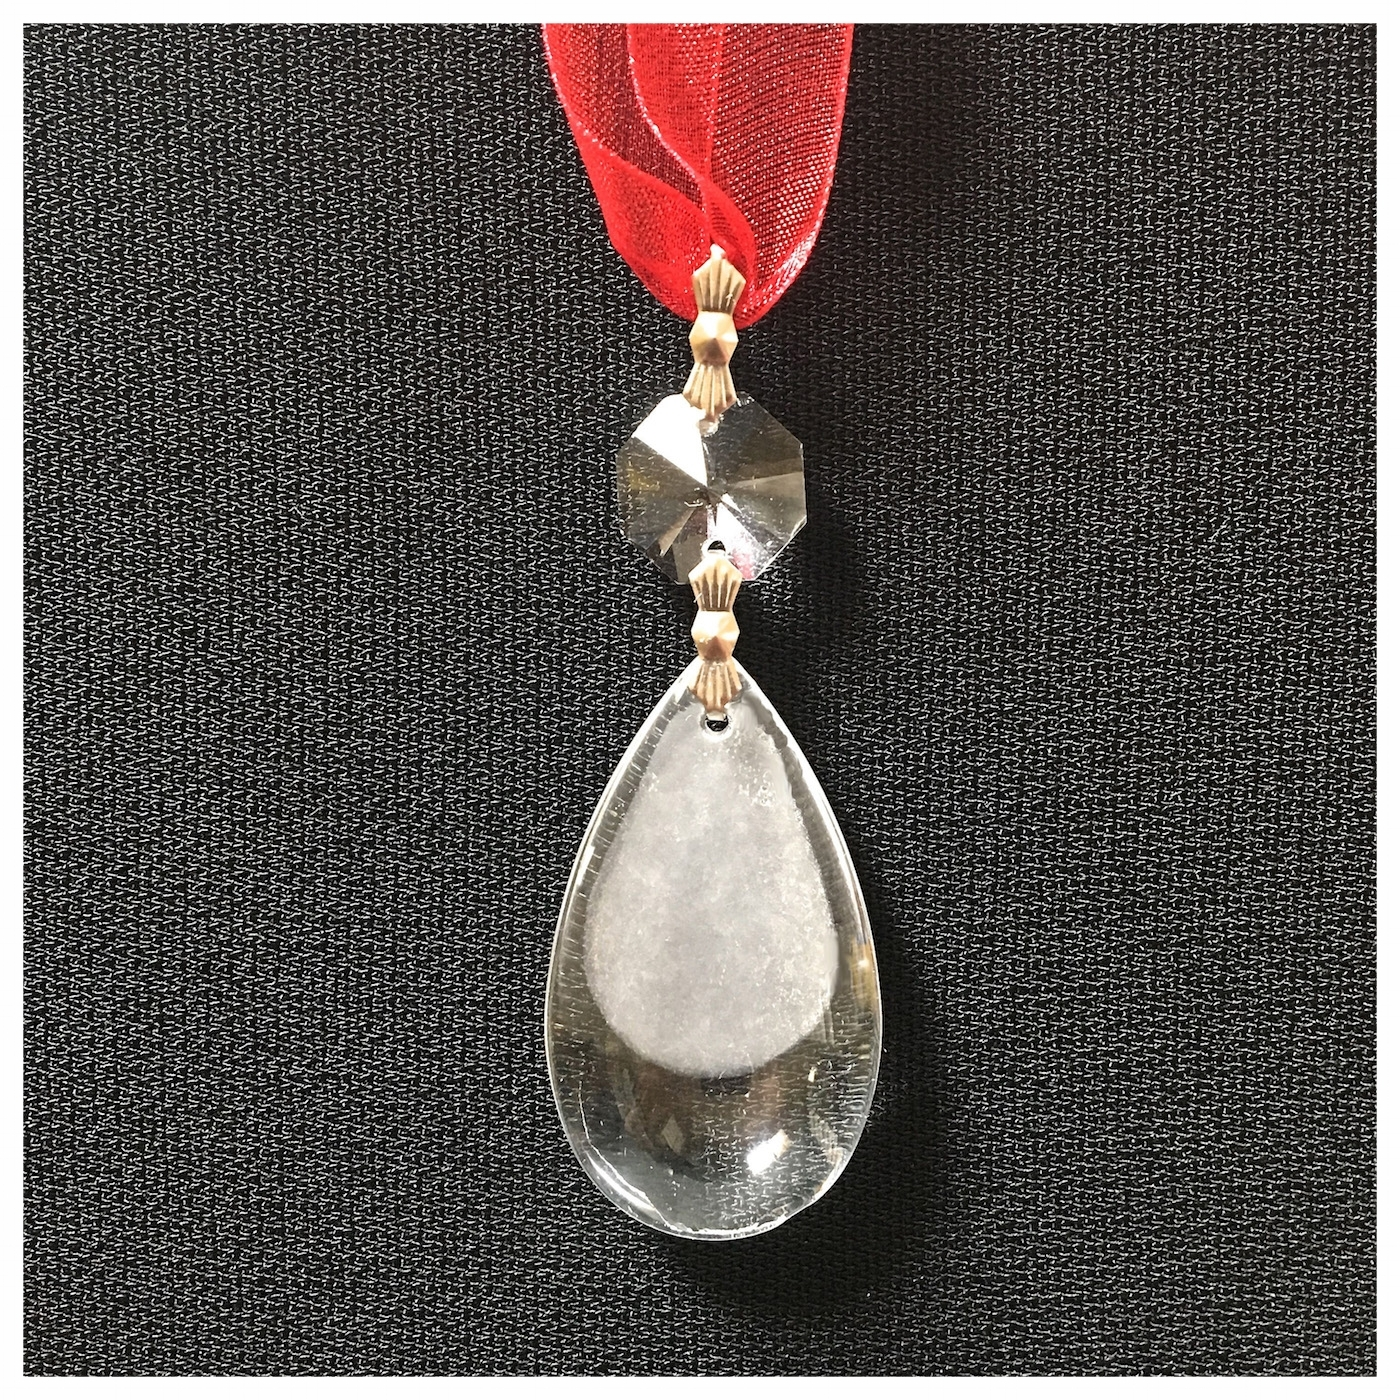 Etched Crystal teardrop ornament 2016.jpg